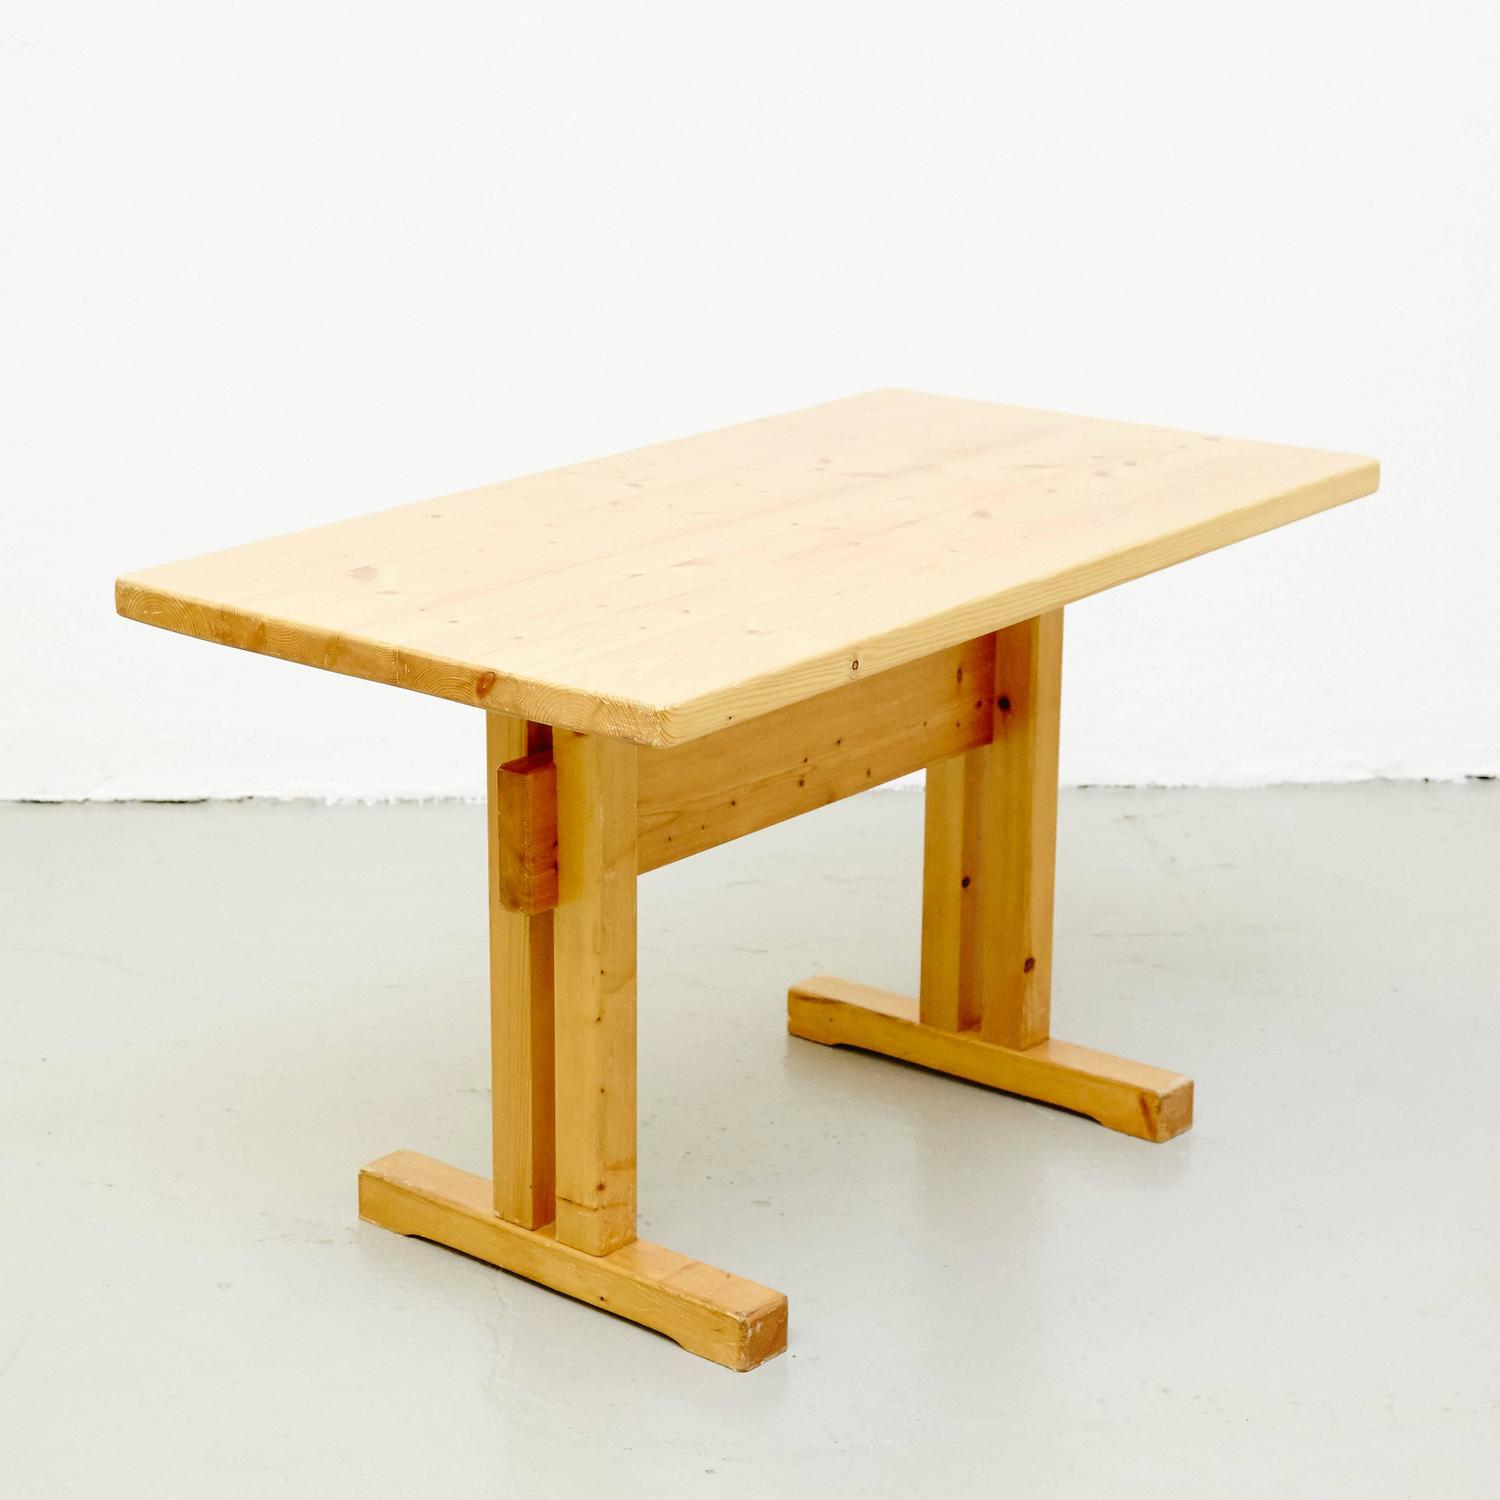 Charlotte perriand table for les arcs for sale at 1stdibs - Table charlotte perriand ...